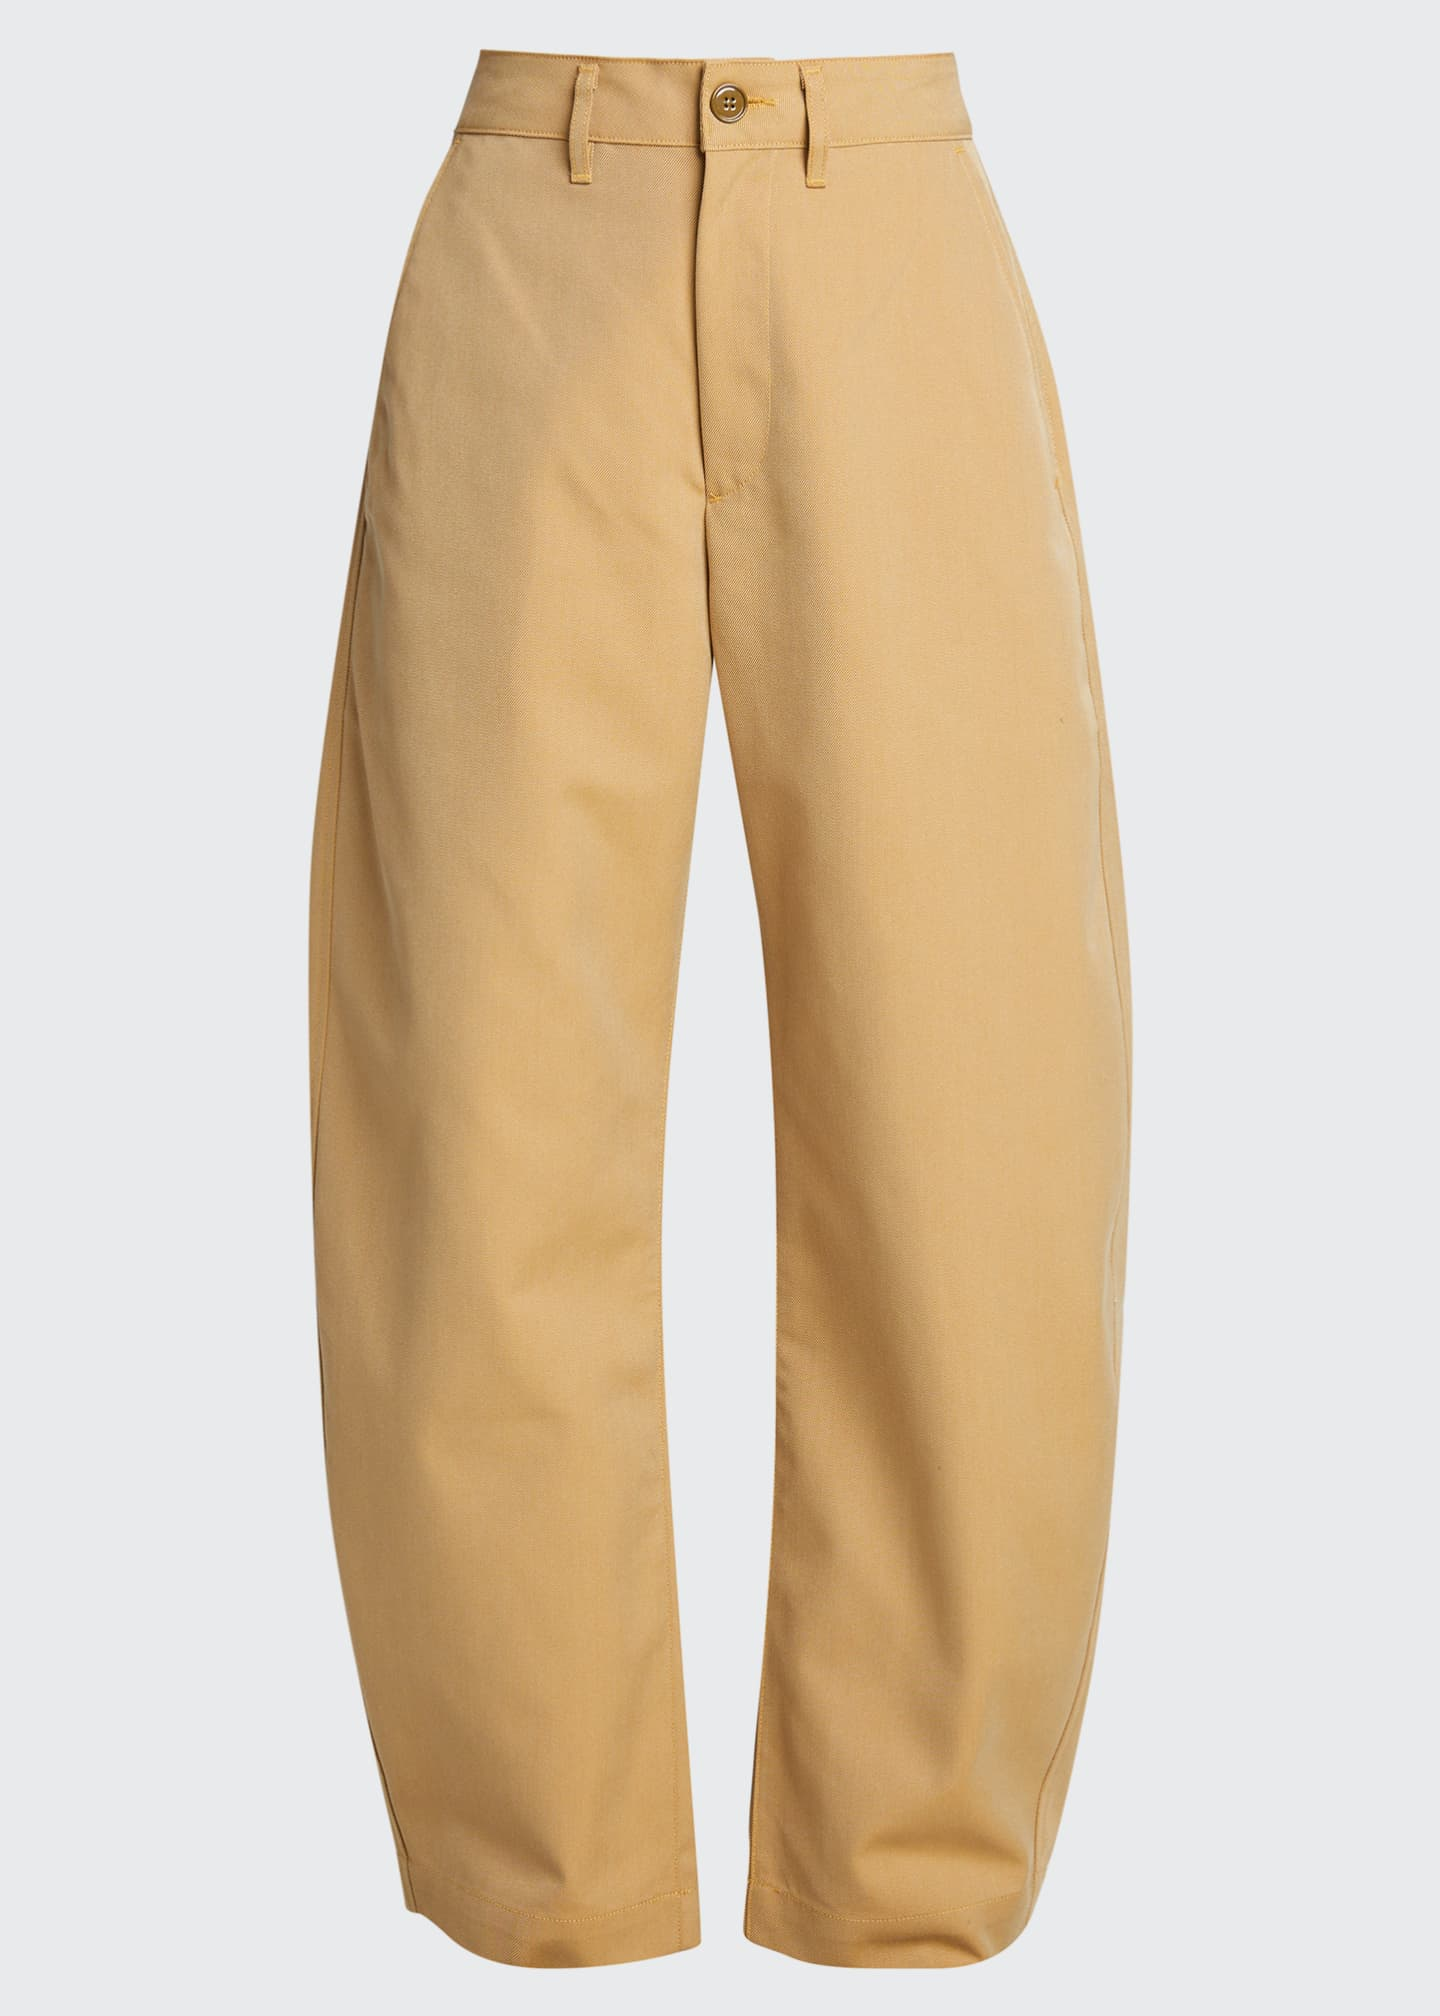 Image 5 of 5: The Low Curve Trousers